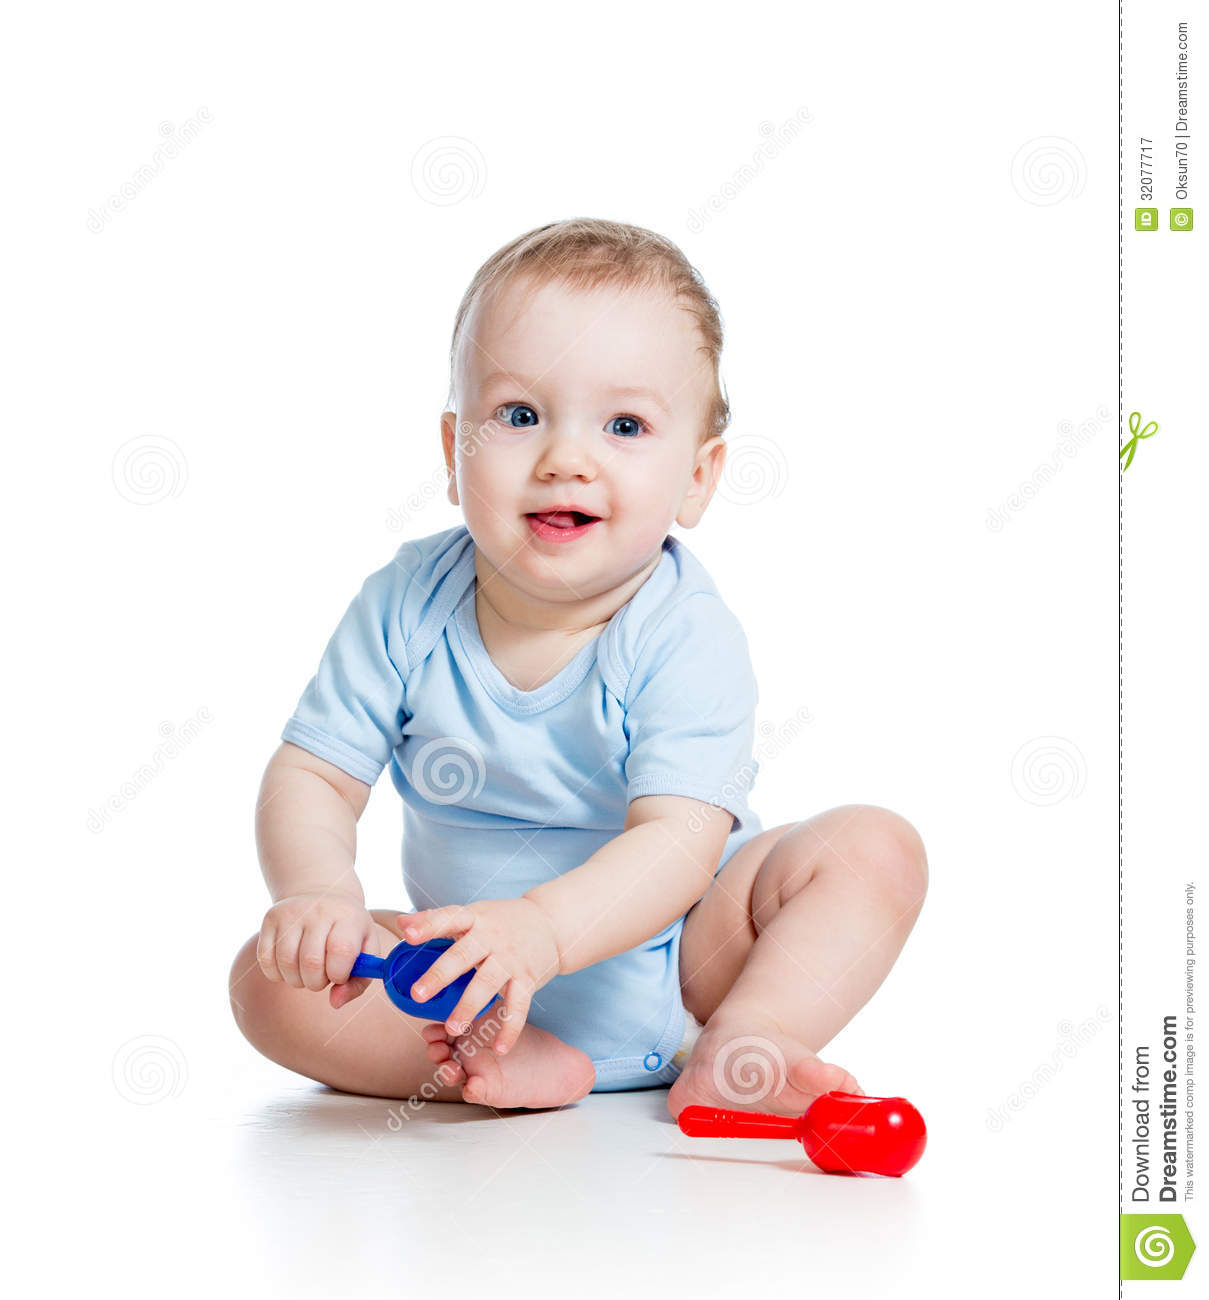 Boy Toys Baby : Smiling boy baby playing royalty free stock photography